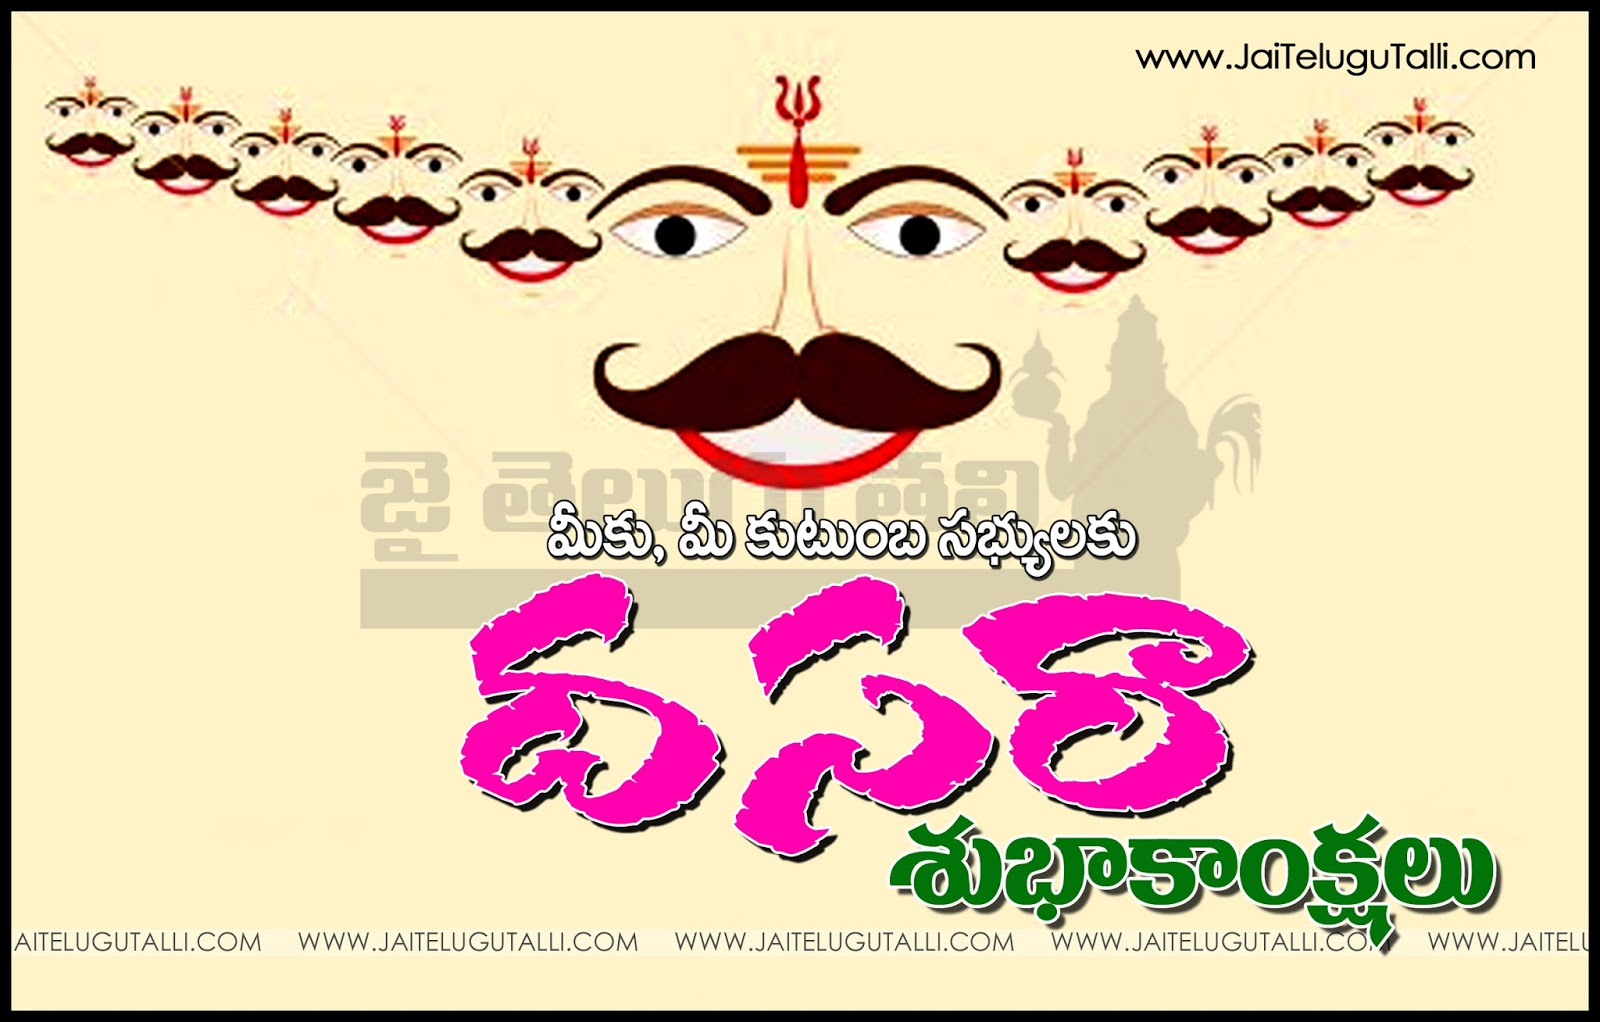 Dussehra greetings images and telugu quotations jaitelugutalli here is a happy dussehra telugu greetingshappy dussehra 2016 quotes sms messages m4hsunfo